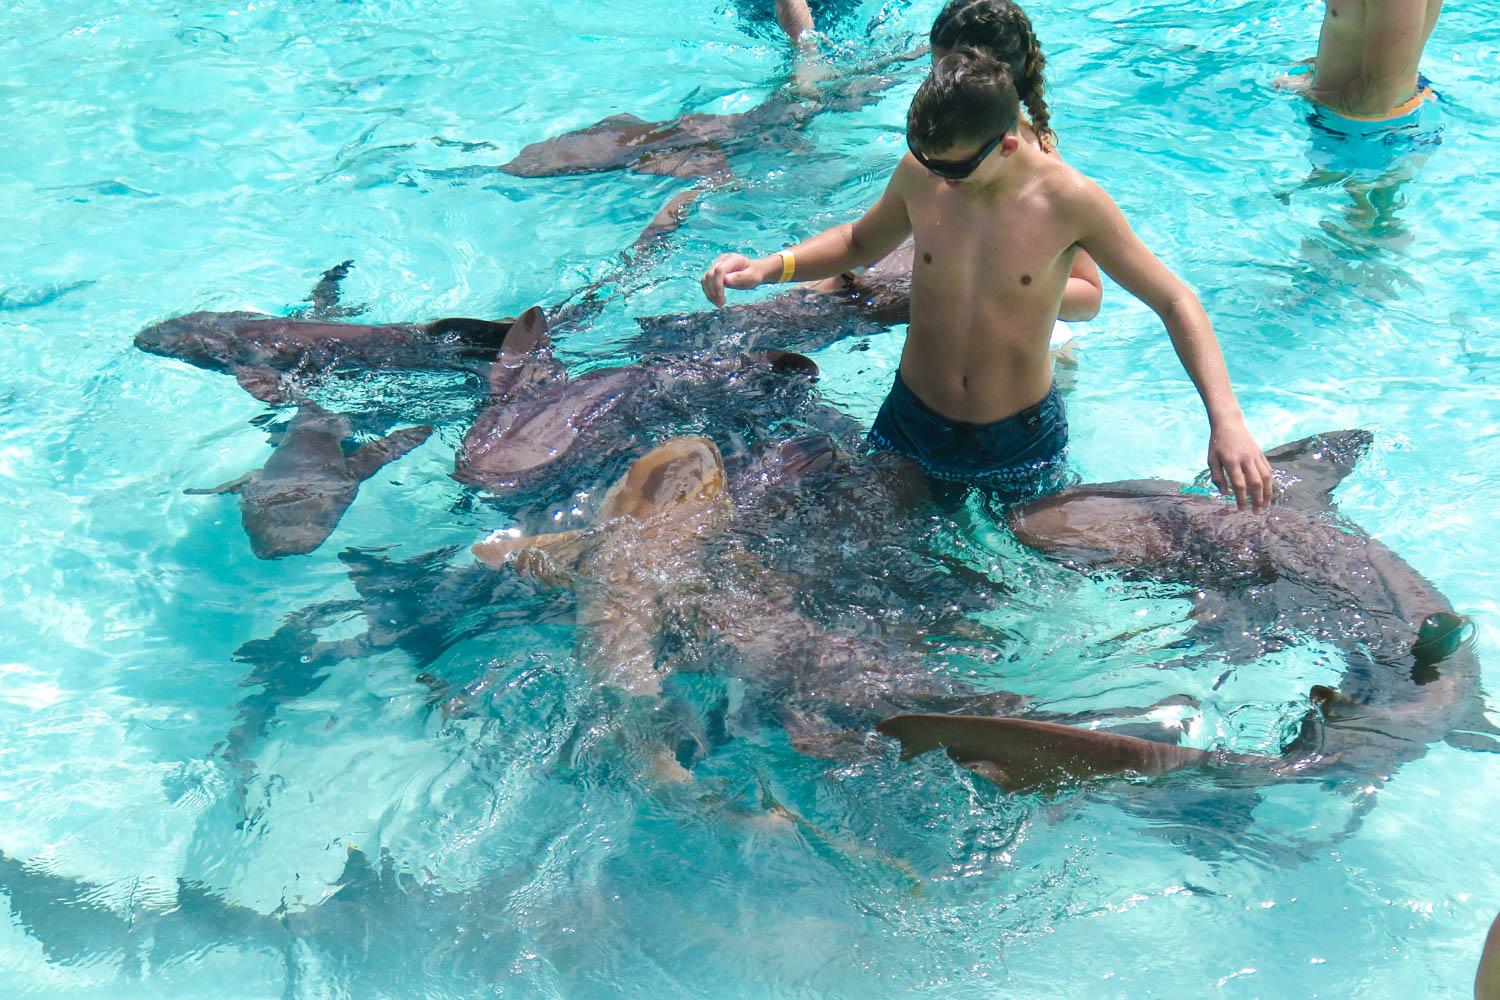 Swimming with Nurse Sharks Bahamas at Compass Cay Marina. These Nurse Sharks are mostly harmless to humans. Compass Cay Bahamas is located in the Exumas.